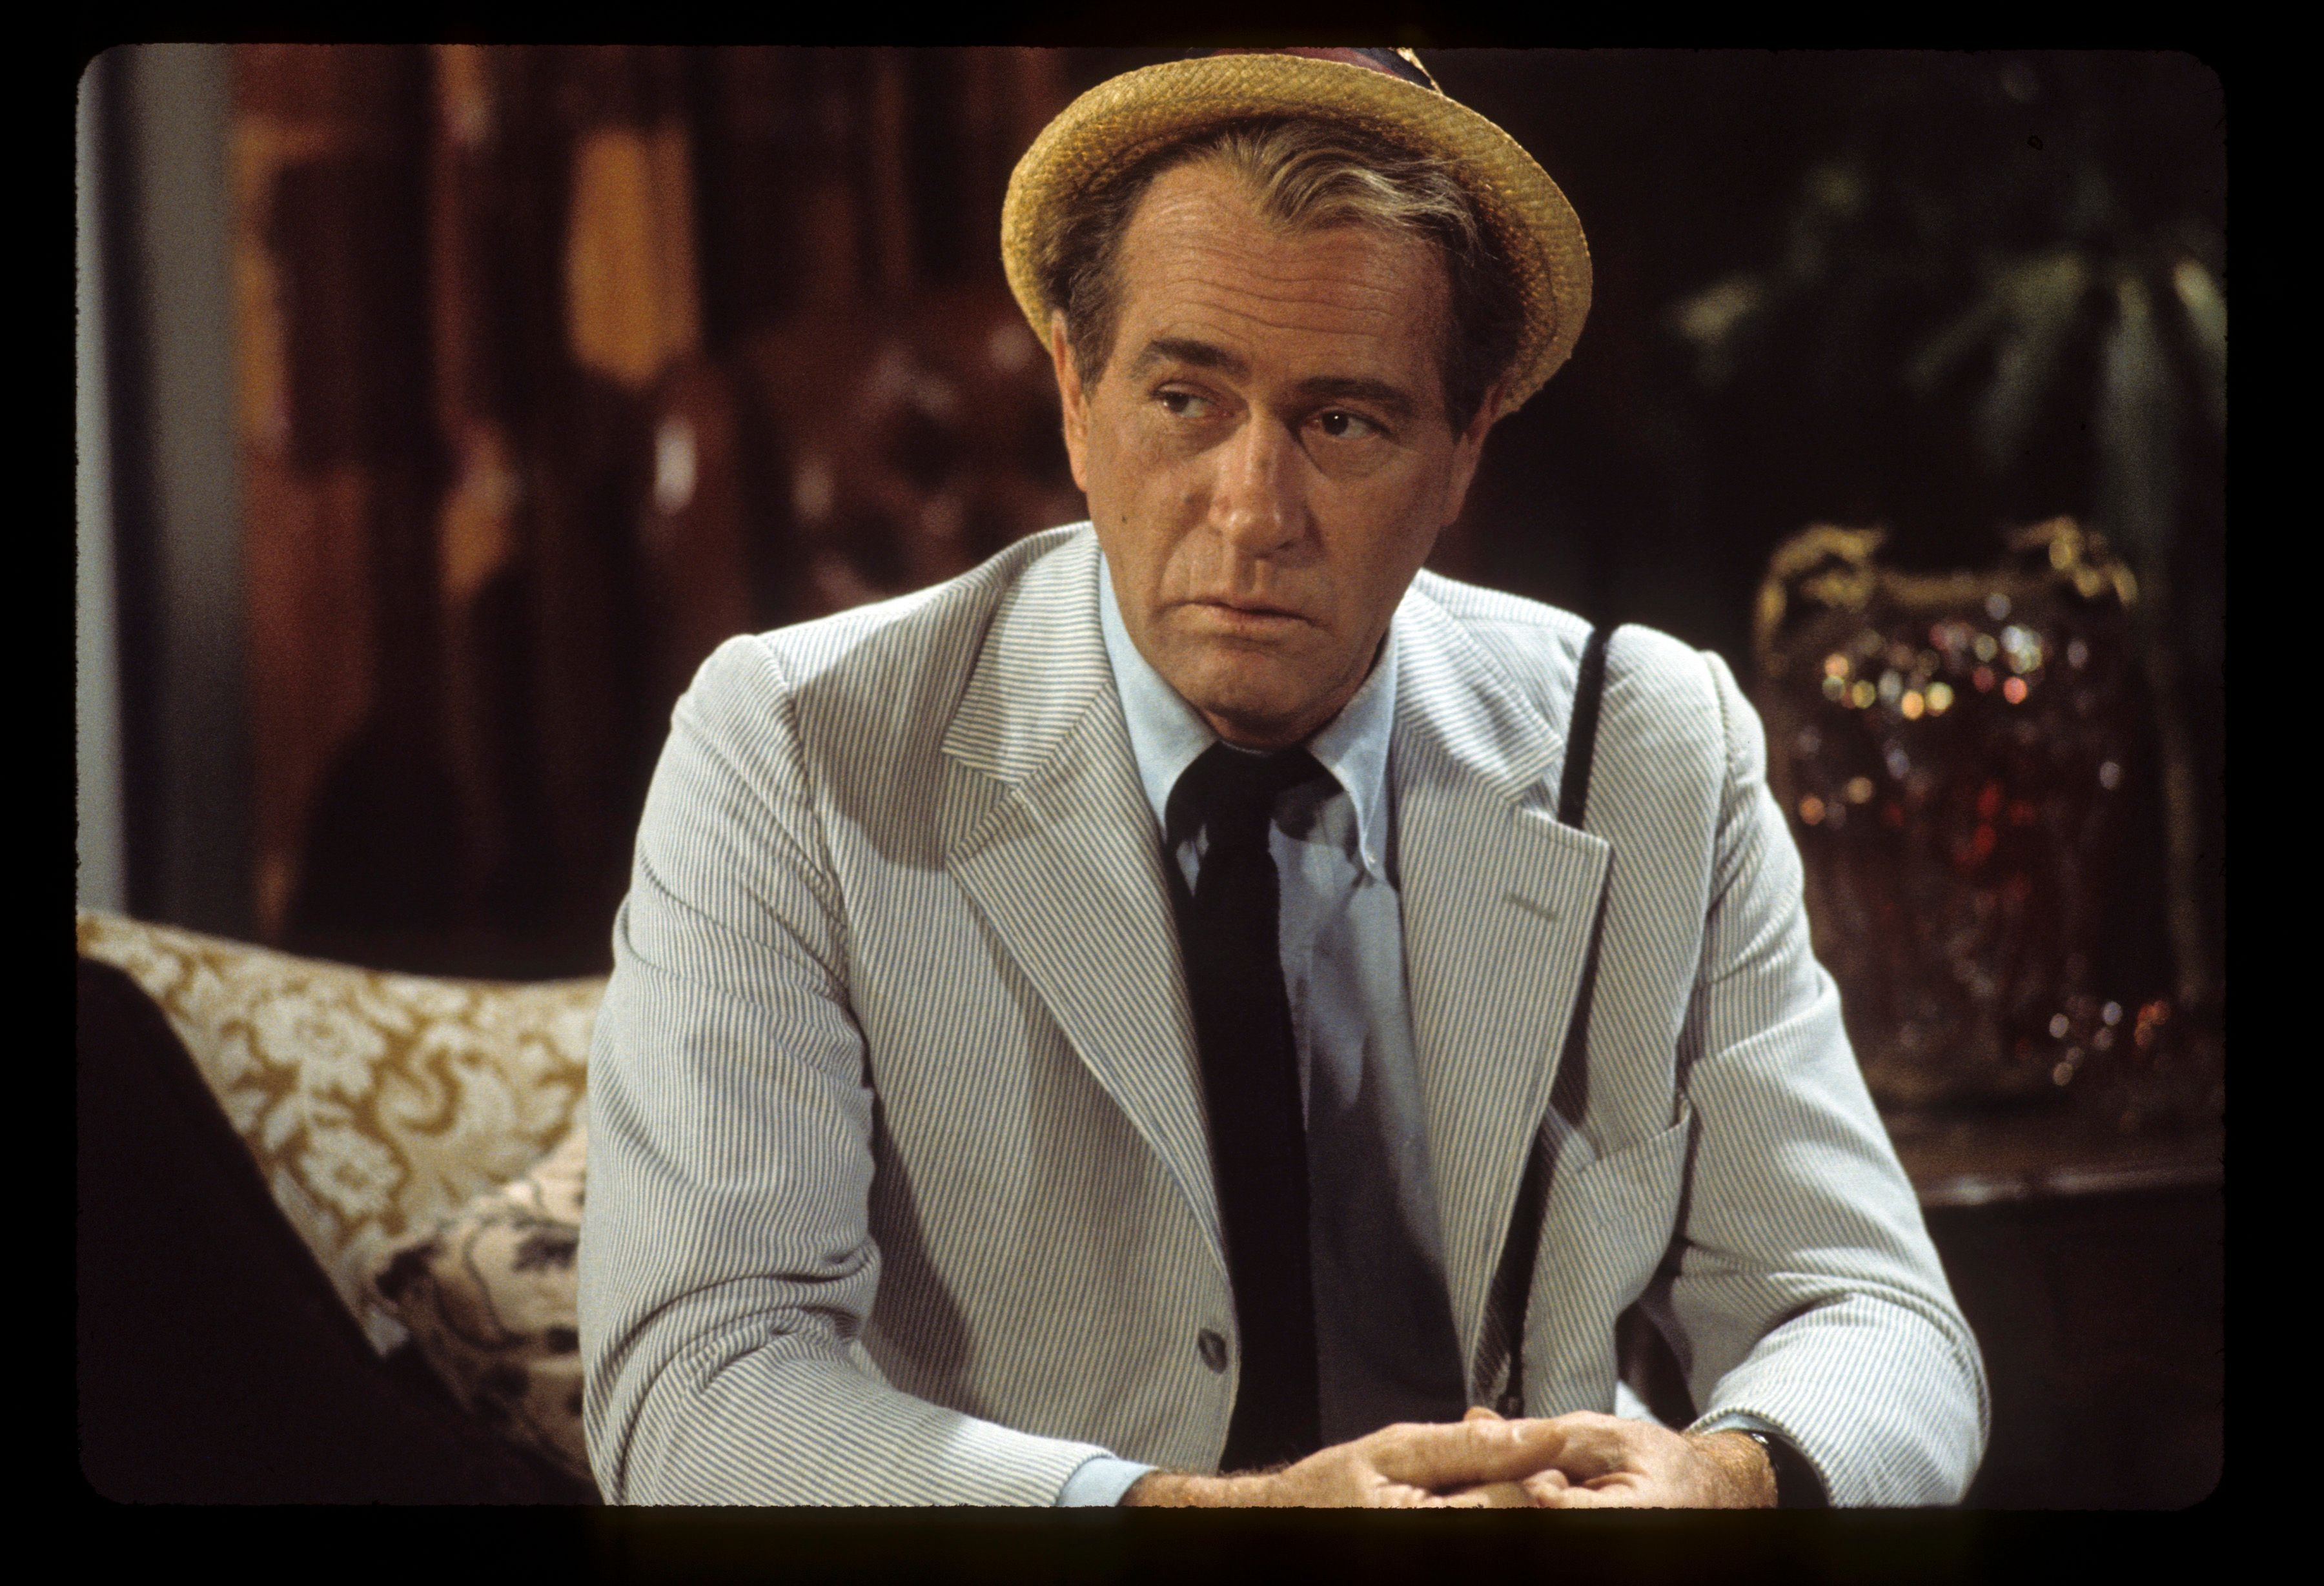 """THE NIGHT STALKER (A.K.A. KOLCHAK: THE NIGHT STALKER) - """"Mr. R.I.N.G."""" - Airdate: January 10, 1975. 